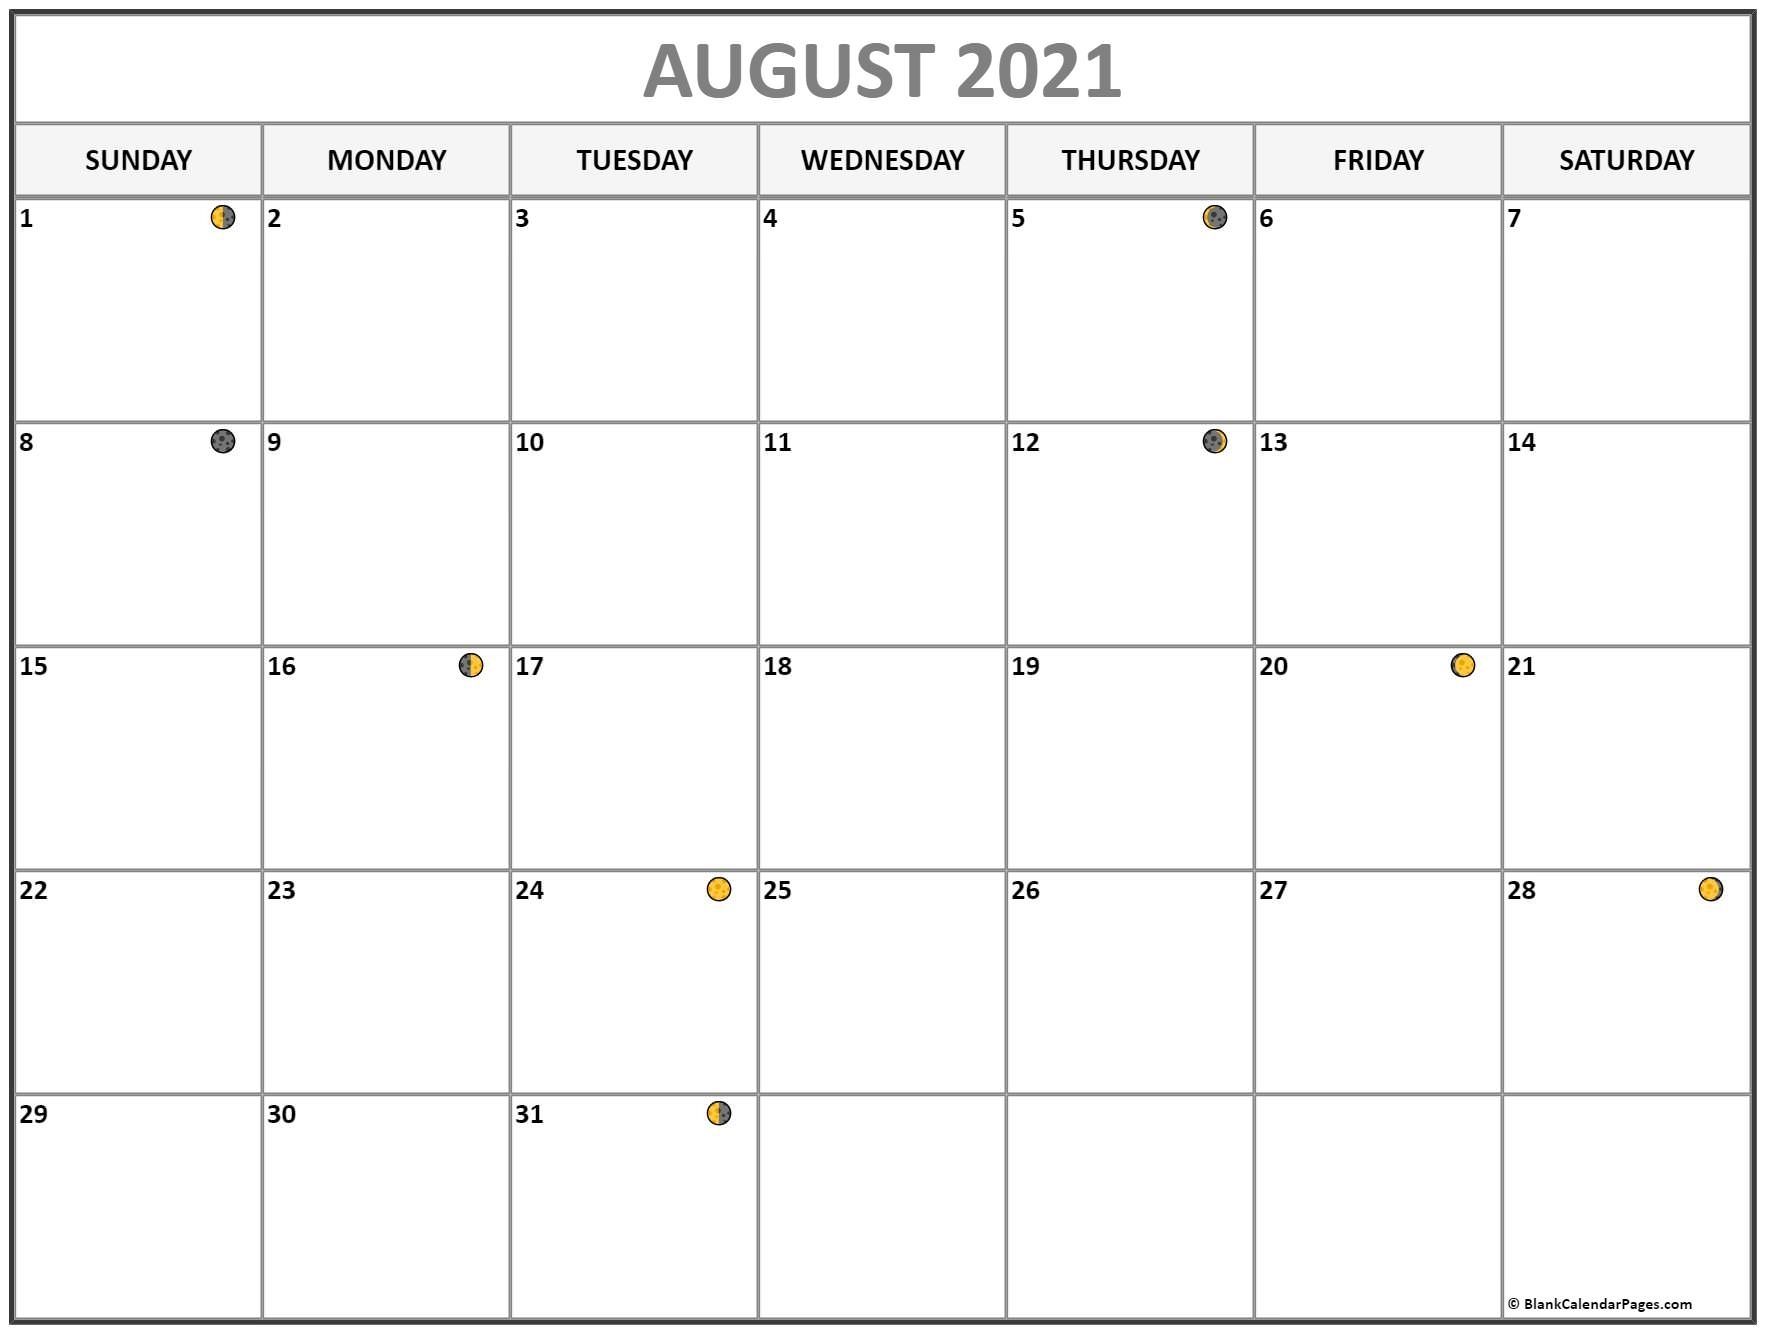 Get August Calendar 2021 With Moon Cycle